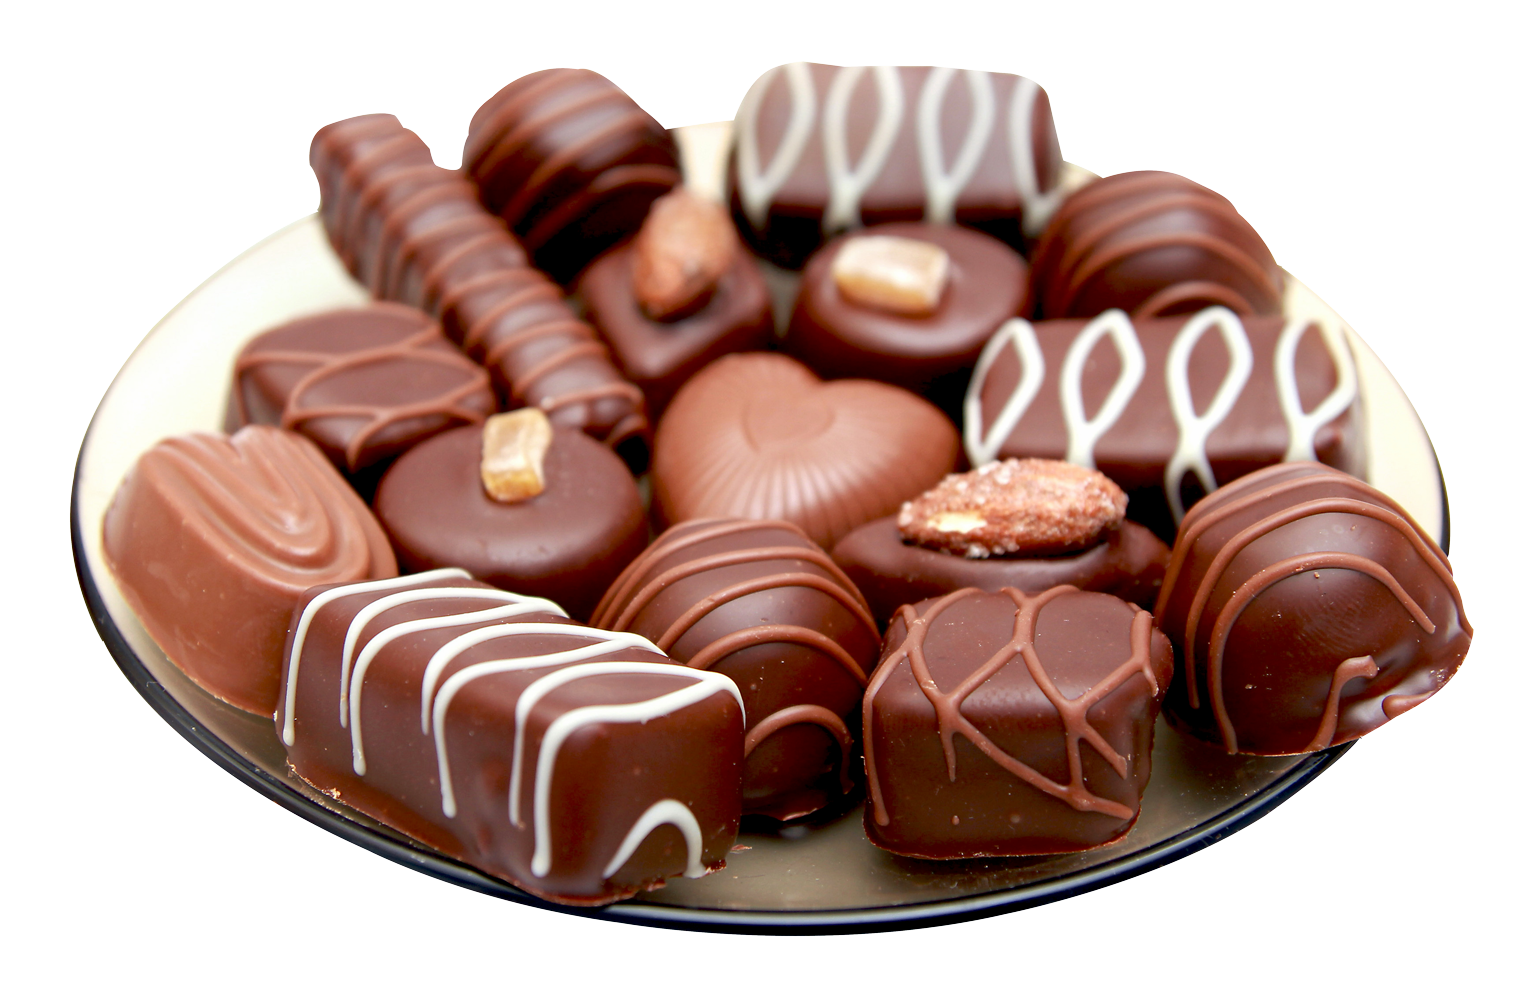 Chocolates in a Plate PNG Image.